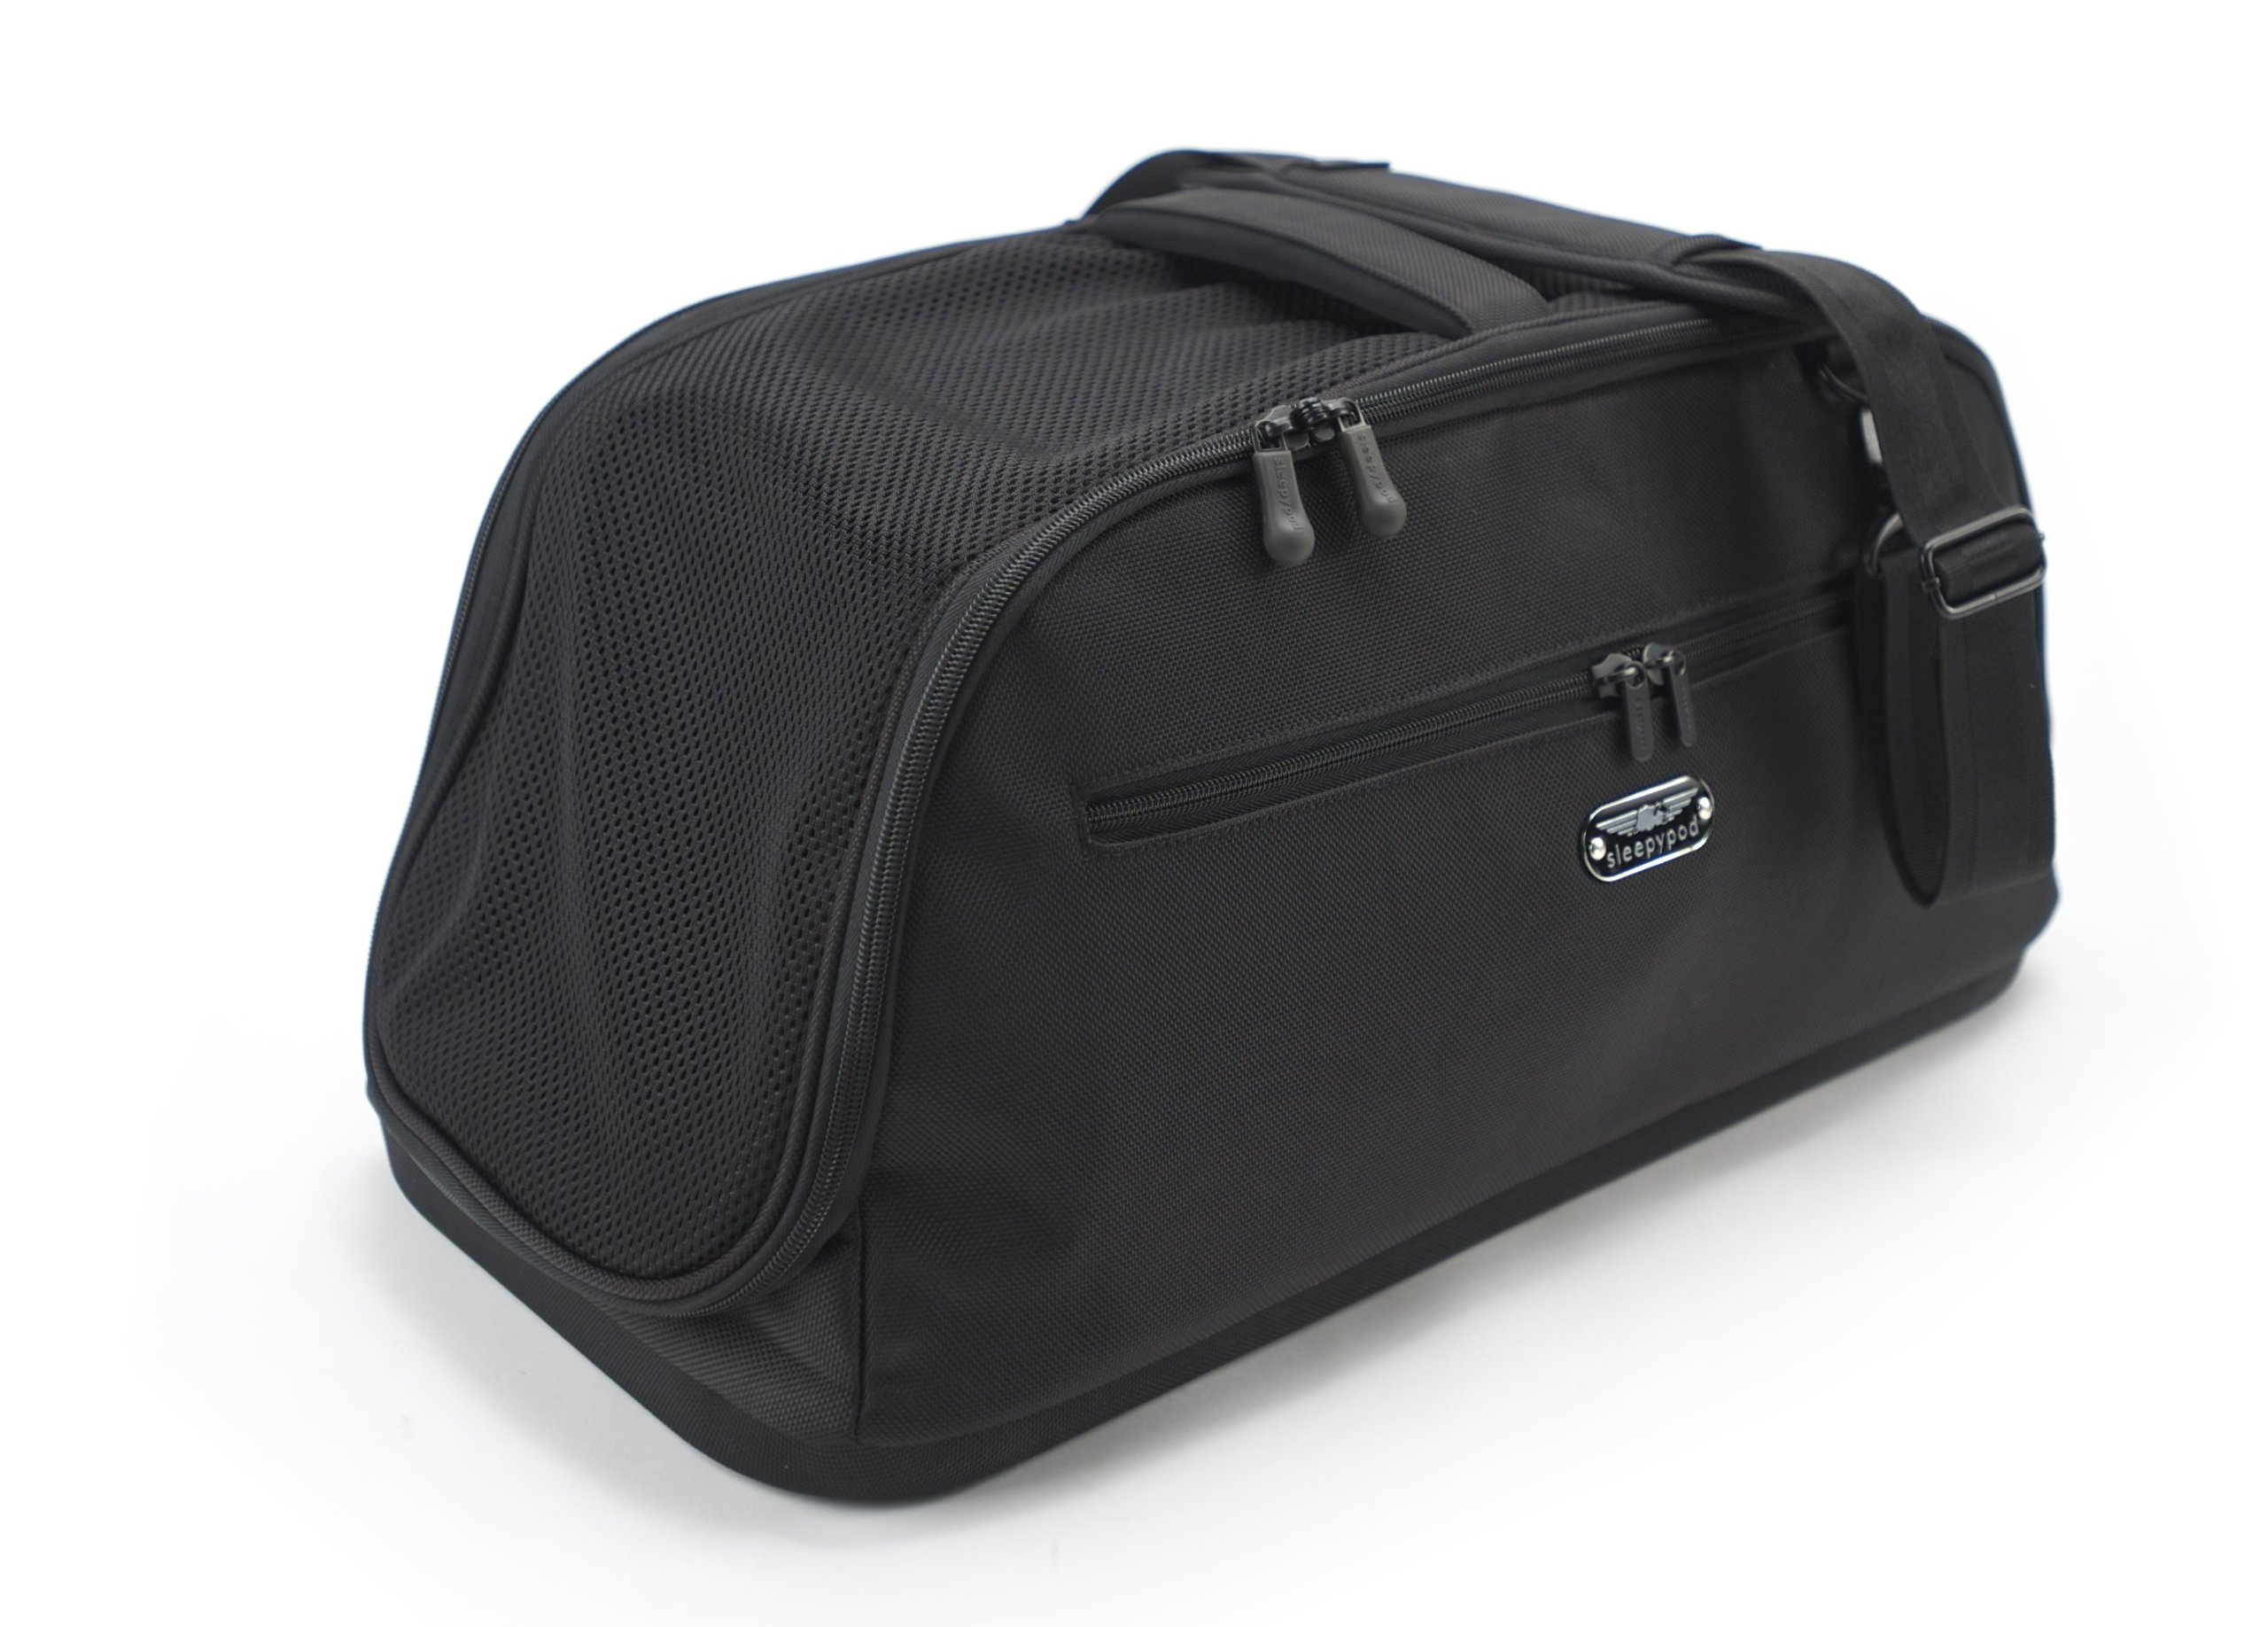 Sleepypod Air In-Cabin Pet Carrier, Jet Black by Sleepypod